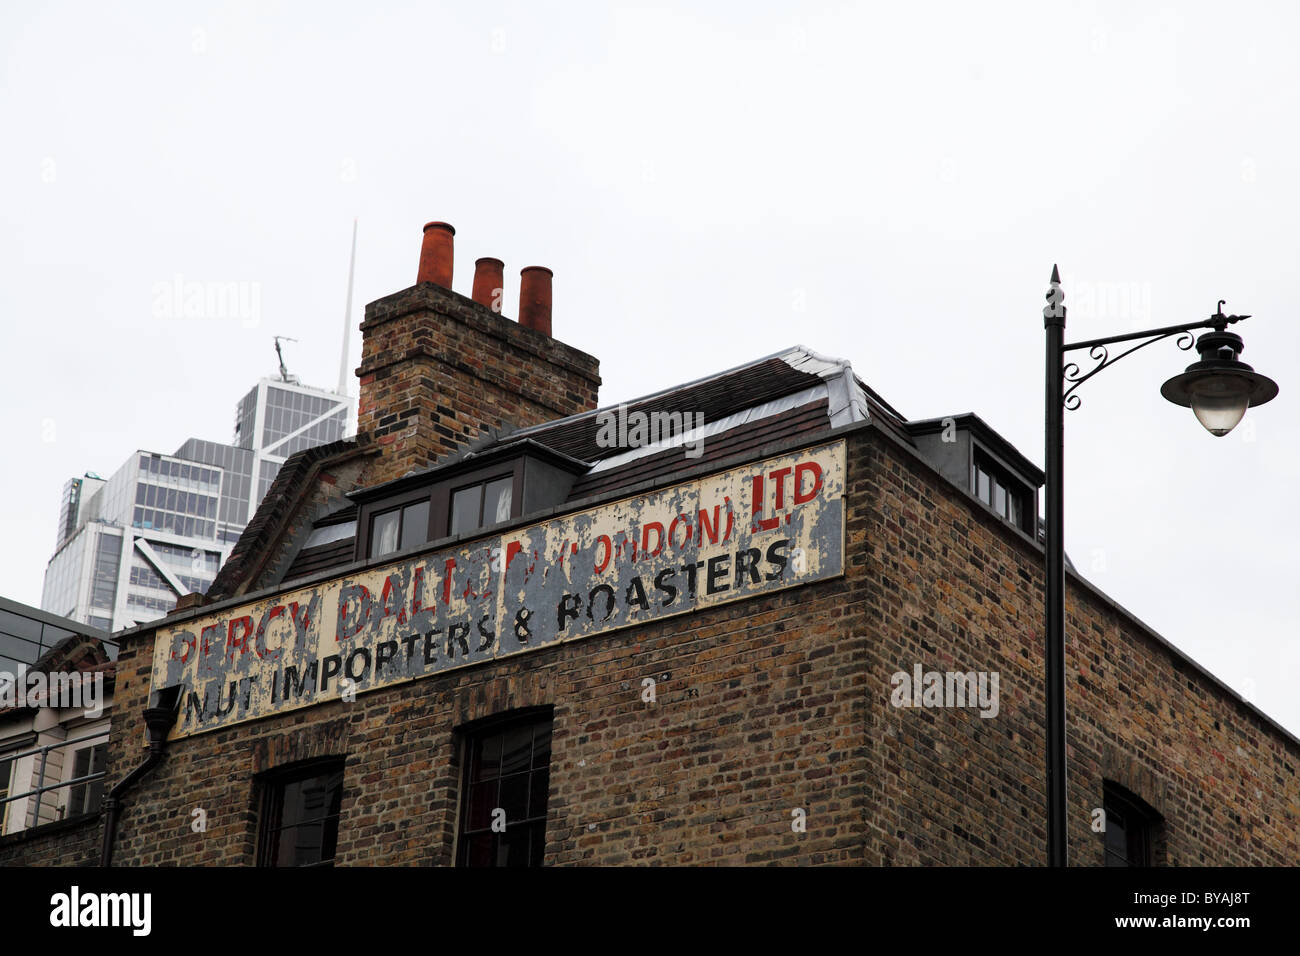 Importers and Roasters sign, Liverpool Street Station. London - Stock Image